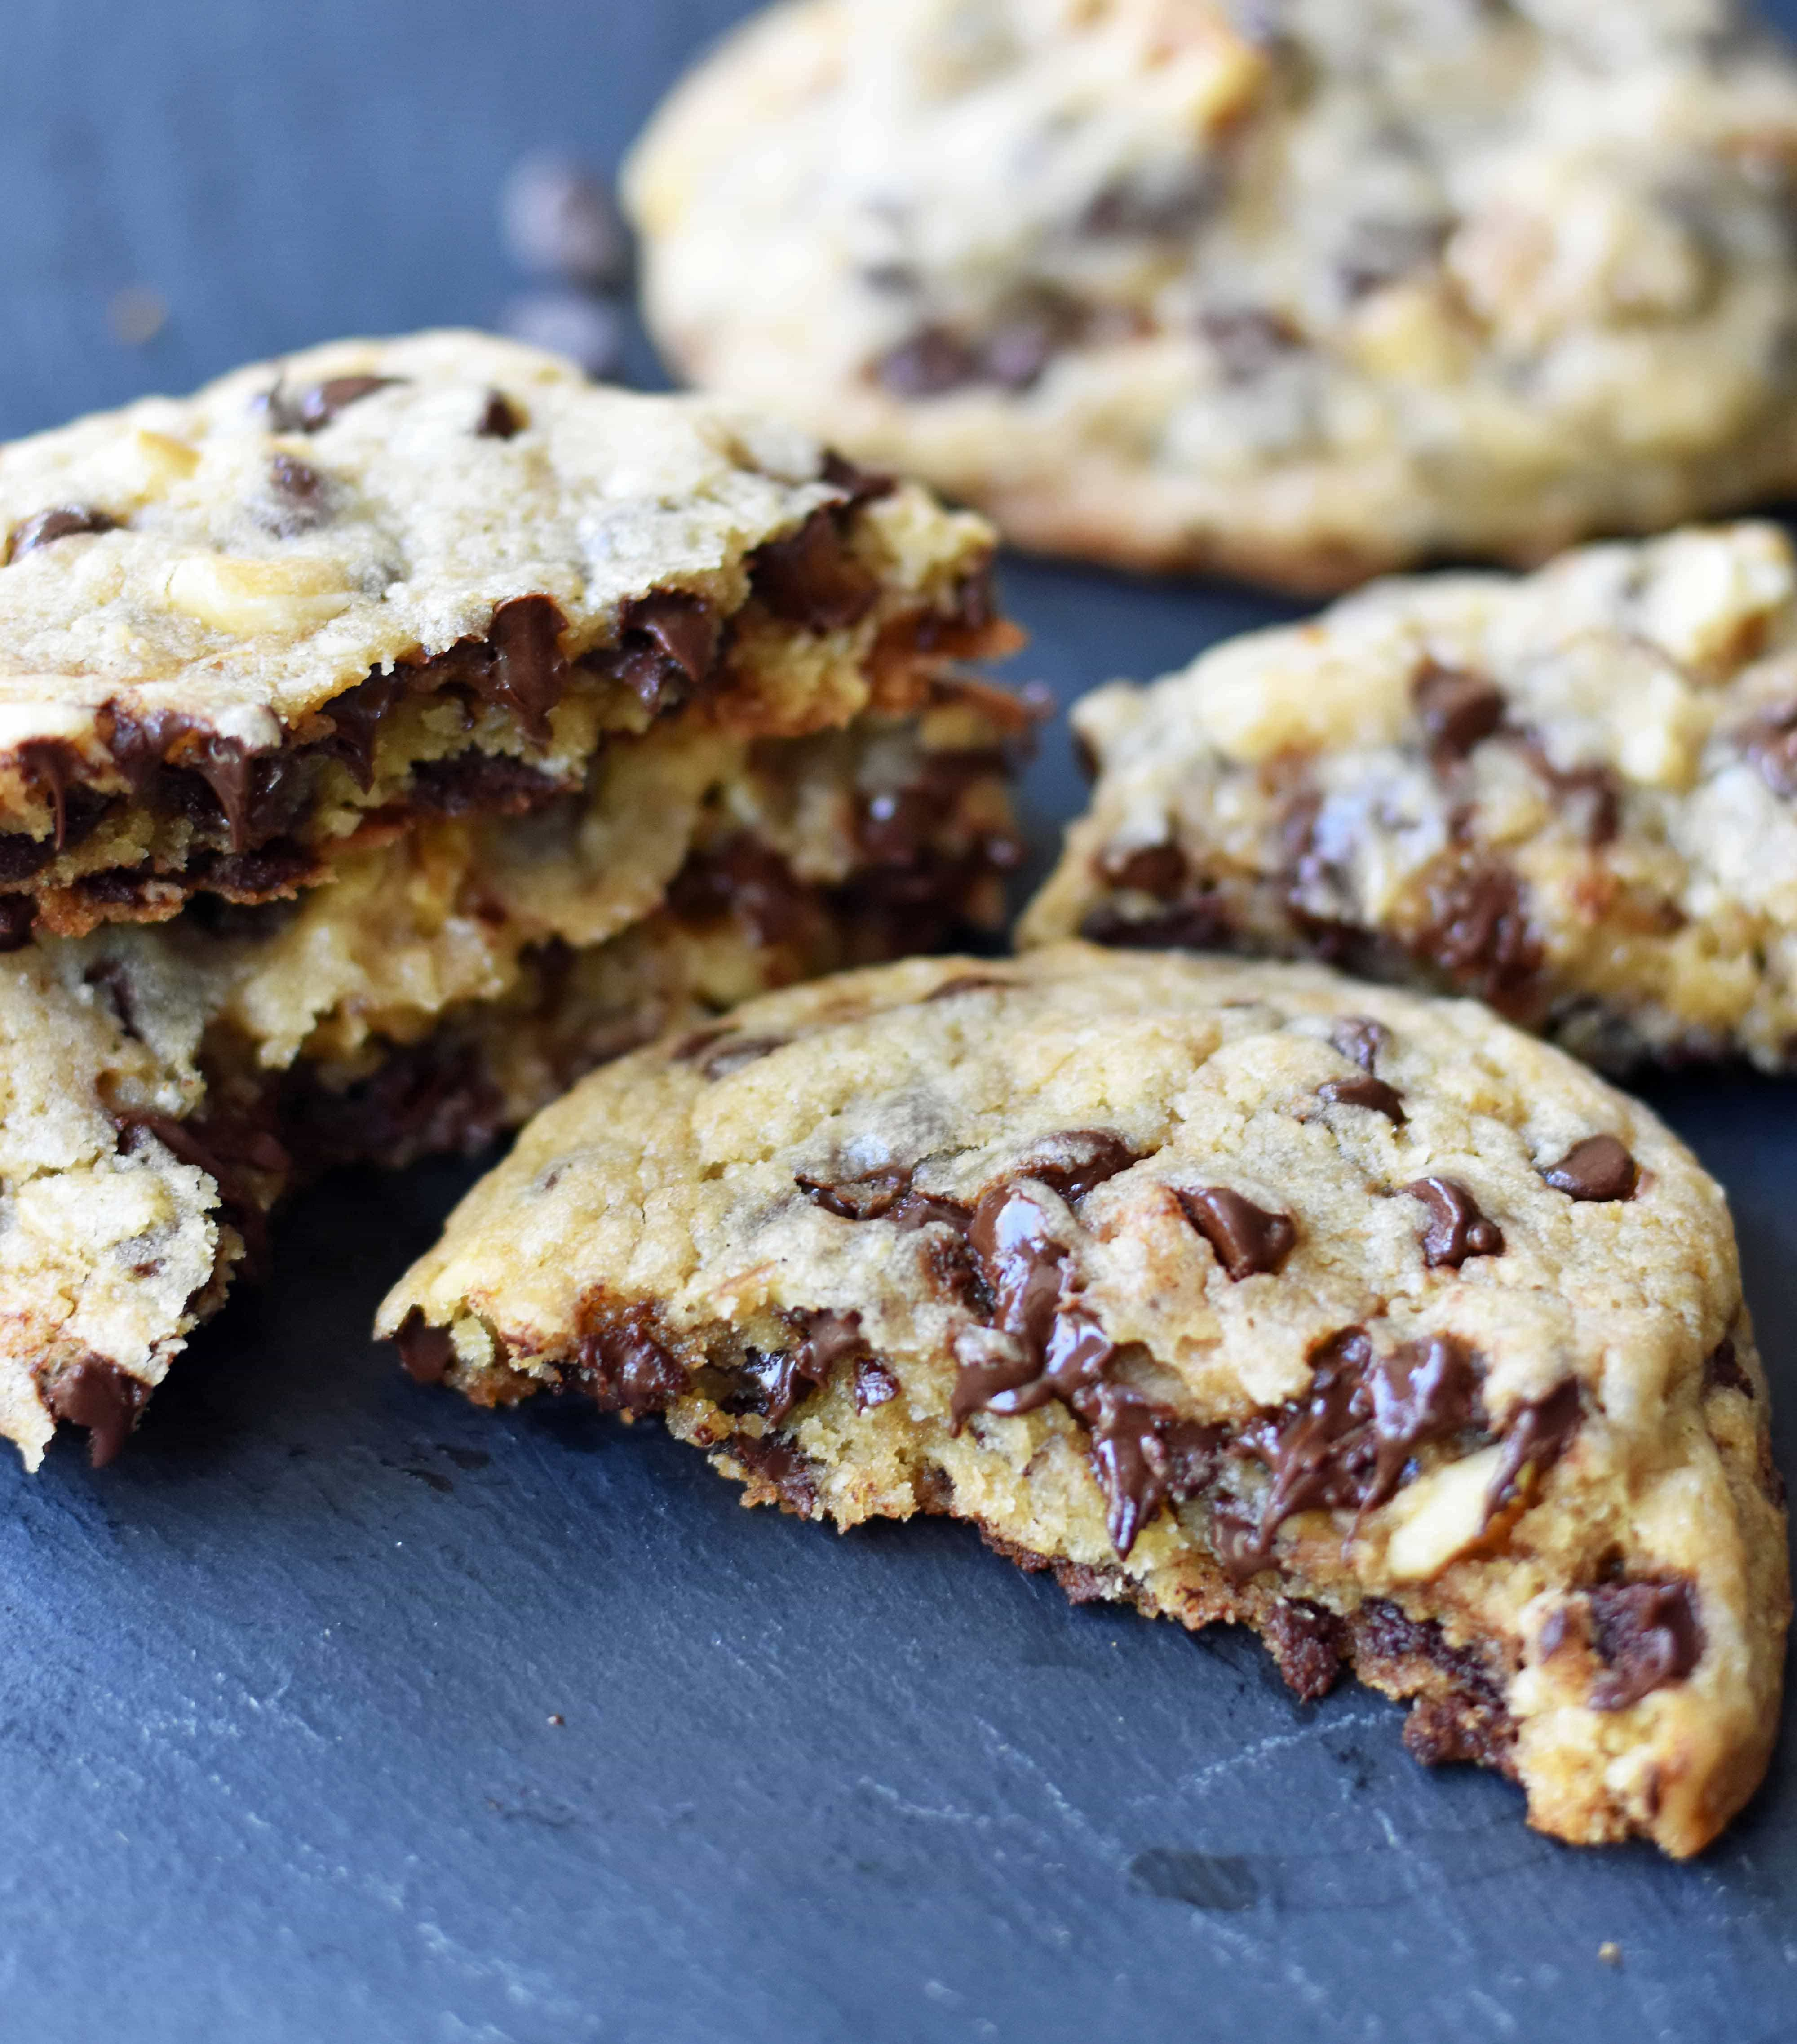 Copycat Doubletree Chocolate Chip Cookie Recipe. How to make the famous Doubletree Chocolate Chip Cookies at home. www.modernhoney.com